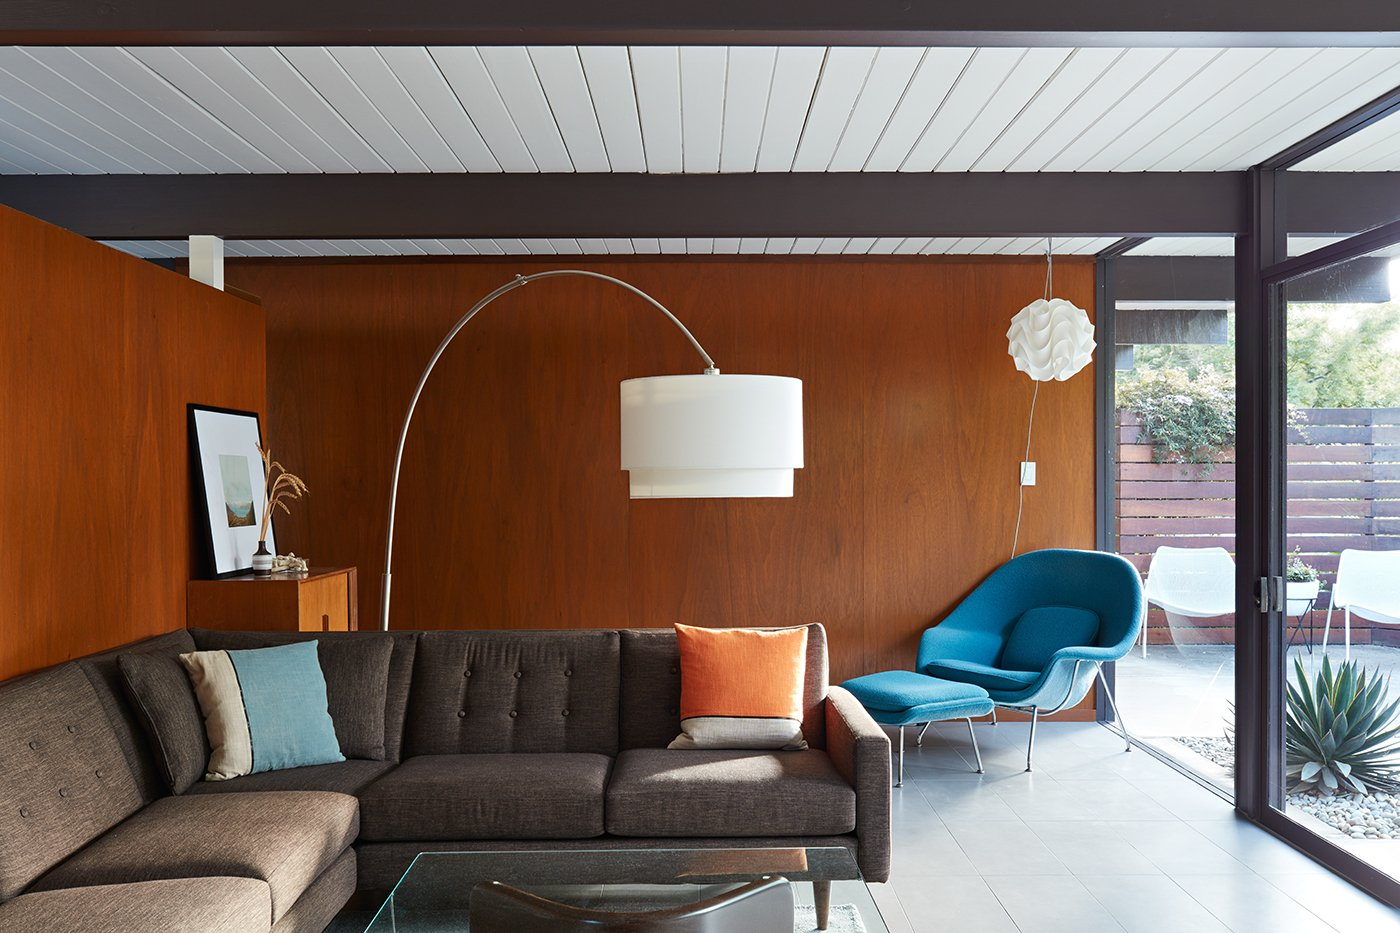 Eichler house in San Mateo Highlands - Klopf architecture - living room